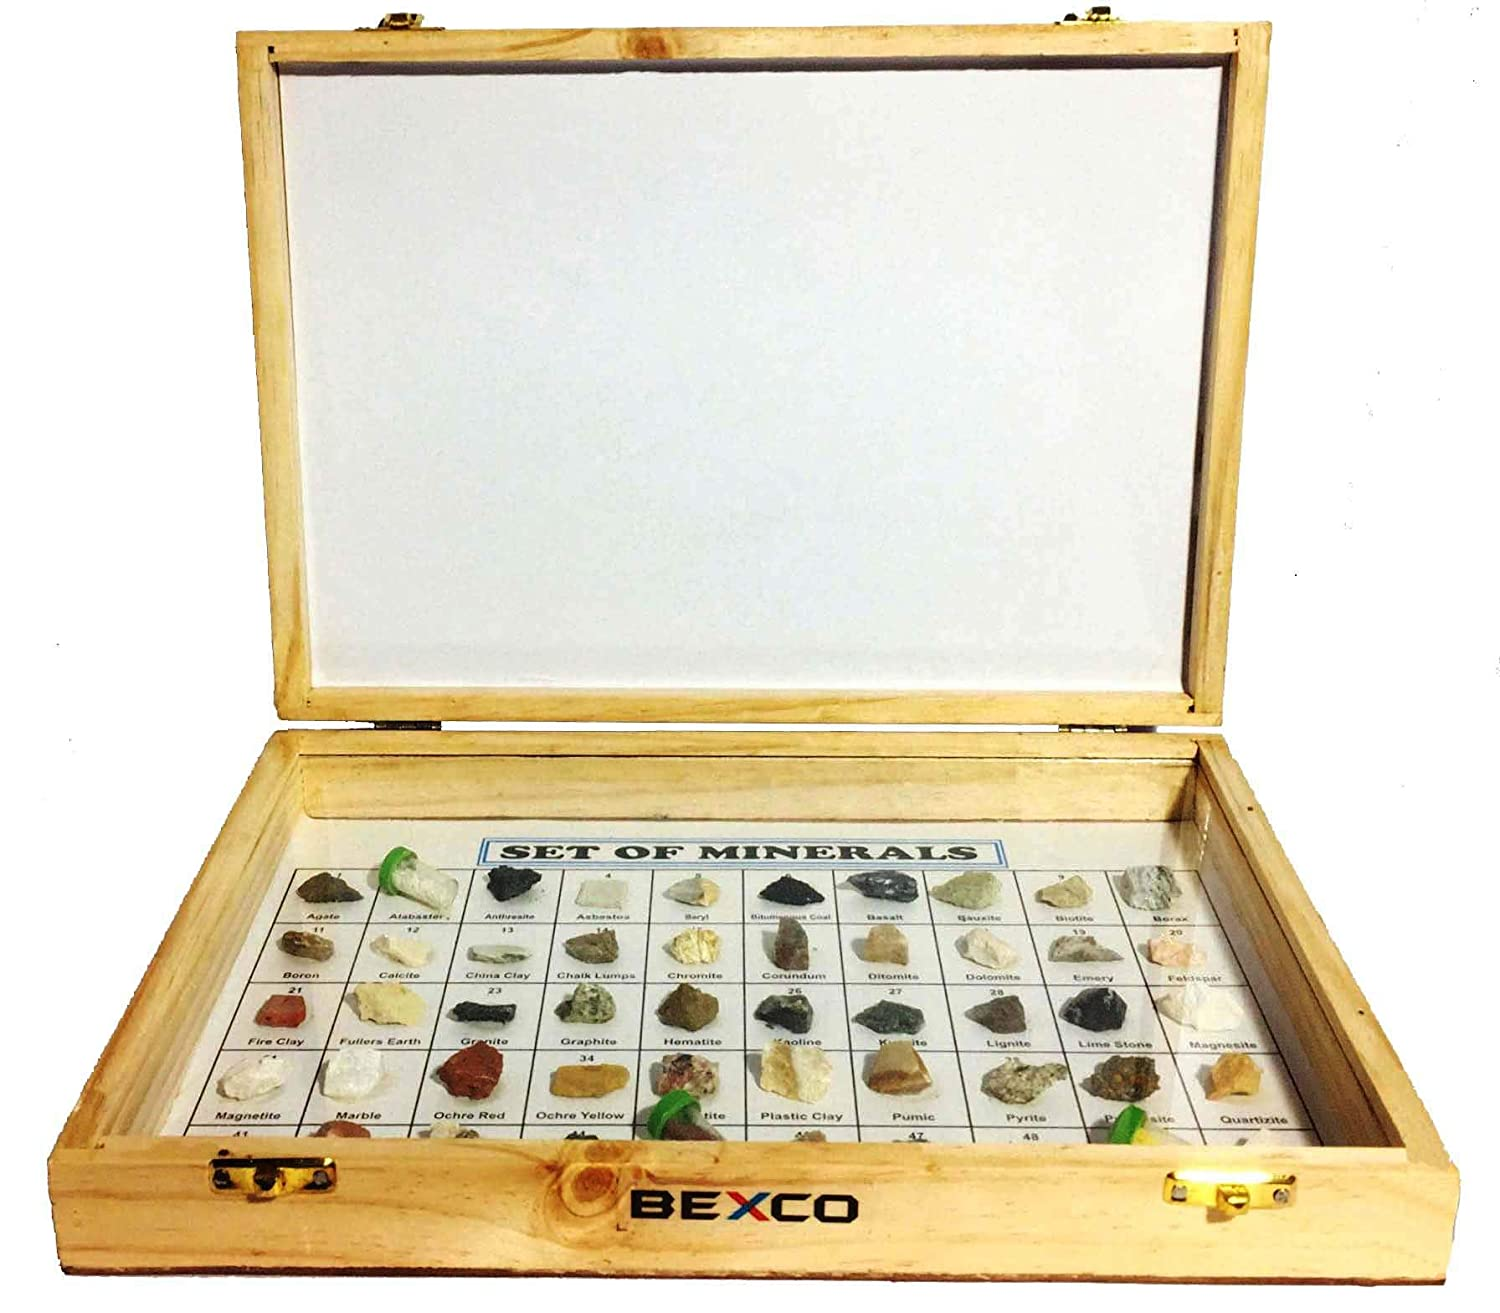 BEXCO New Collection of 50 Minerals Specimen in Wooden Showcase Box